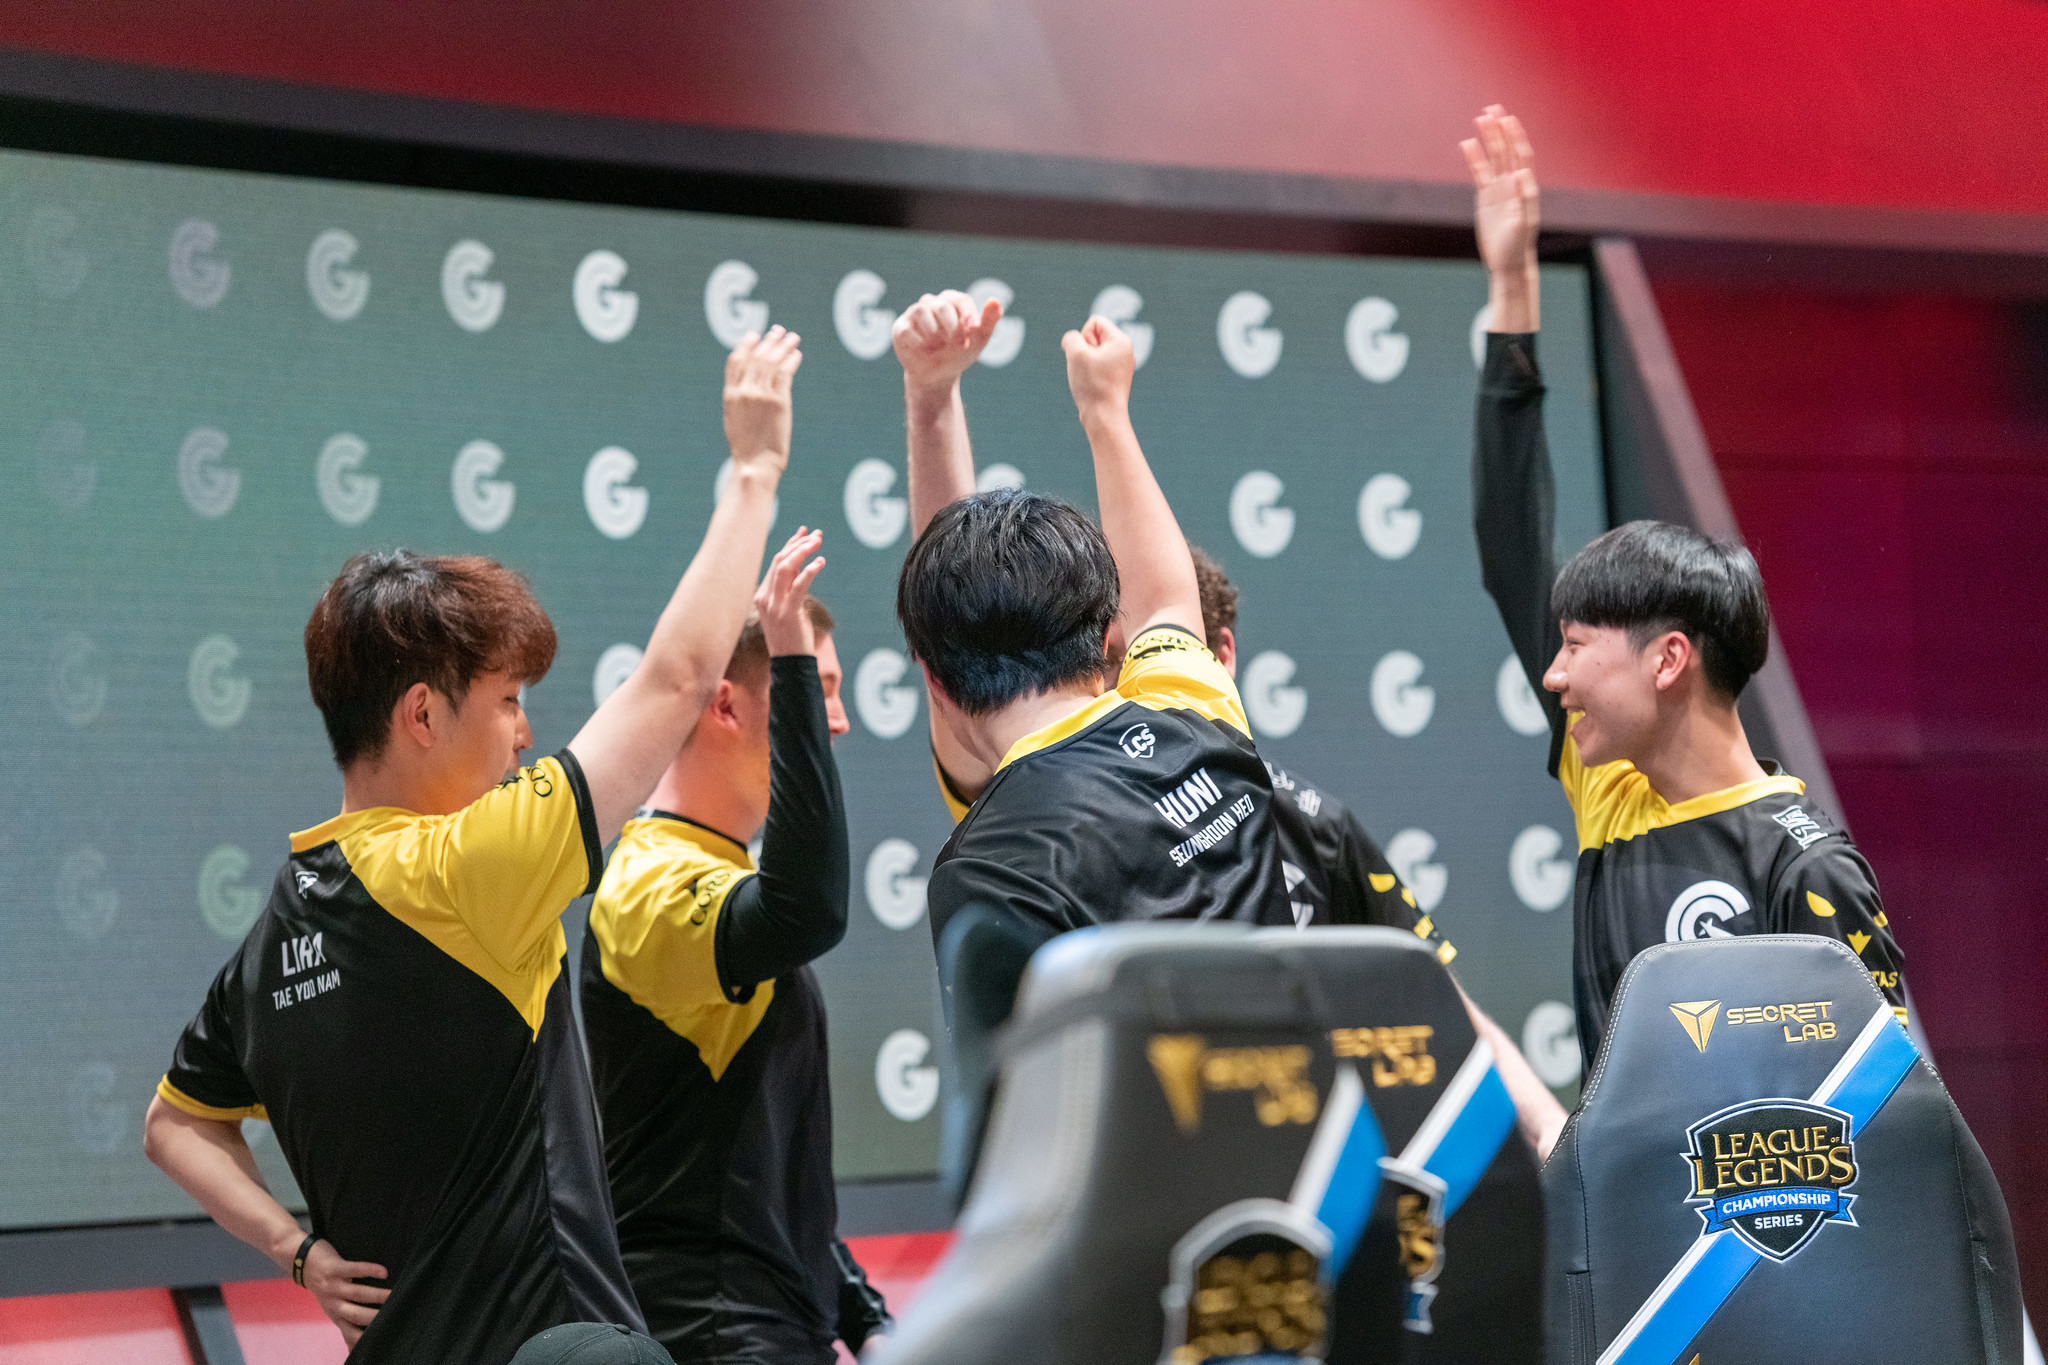 Clutch Gaming take down TSM to qualify for the 2019 LCS Summer Split